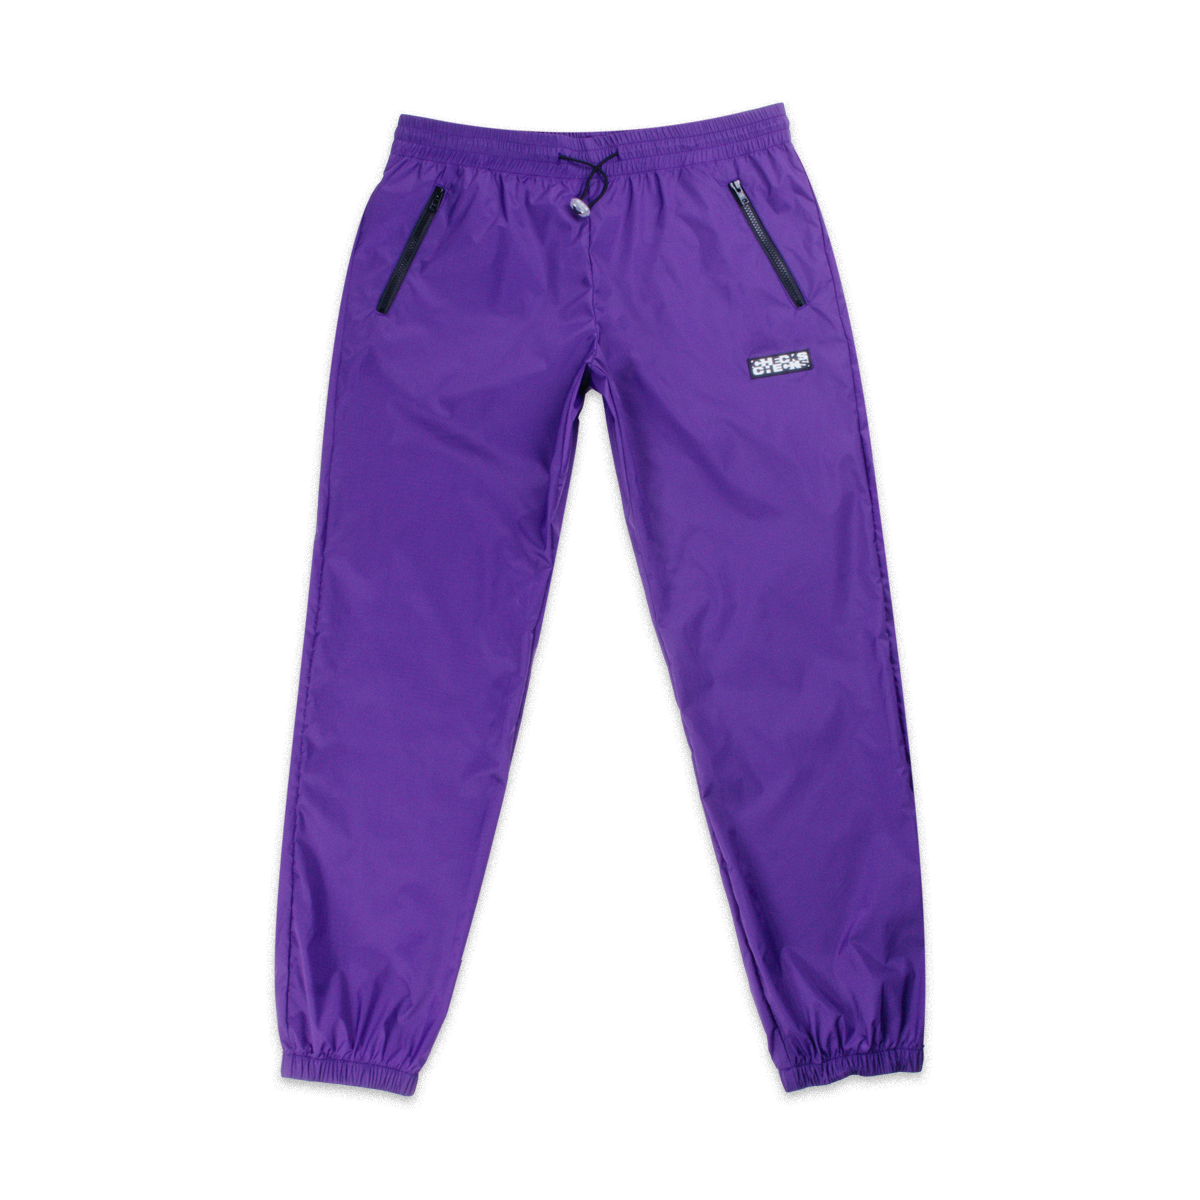 Load image into Gallery viewer, Nylon Running Pants Purple | CHECKS DOWNTOWN  Edit alt text